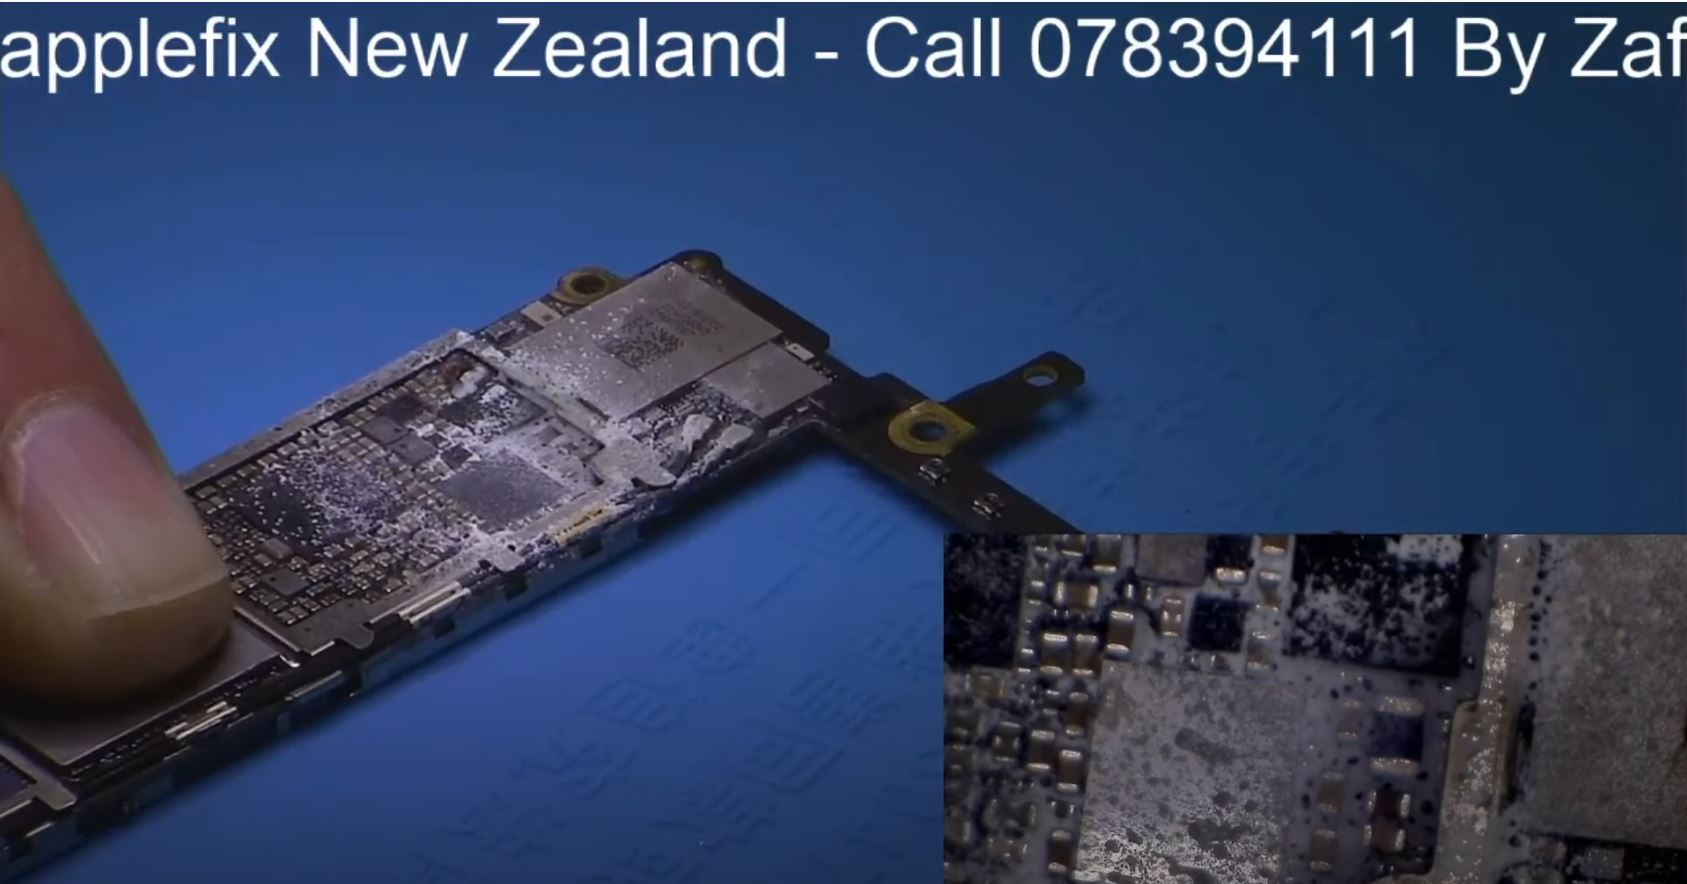 iphone dead repair, how to find faulty component or short on iphone logic board